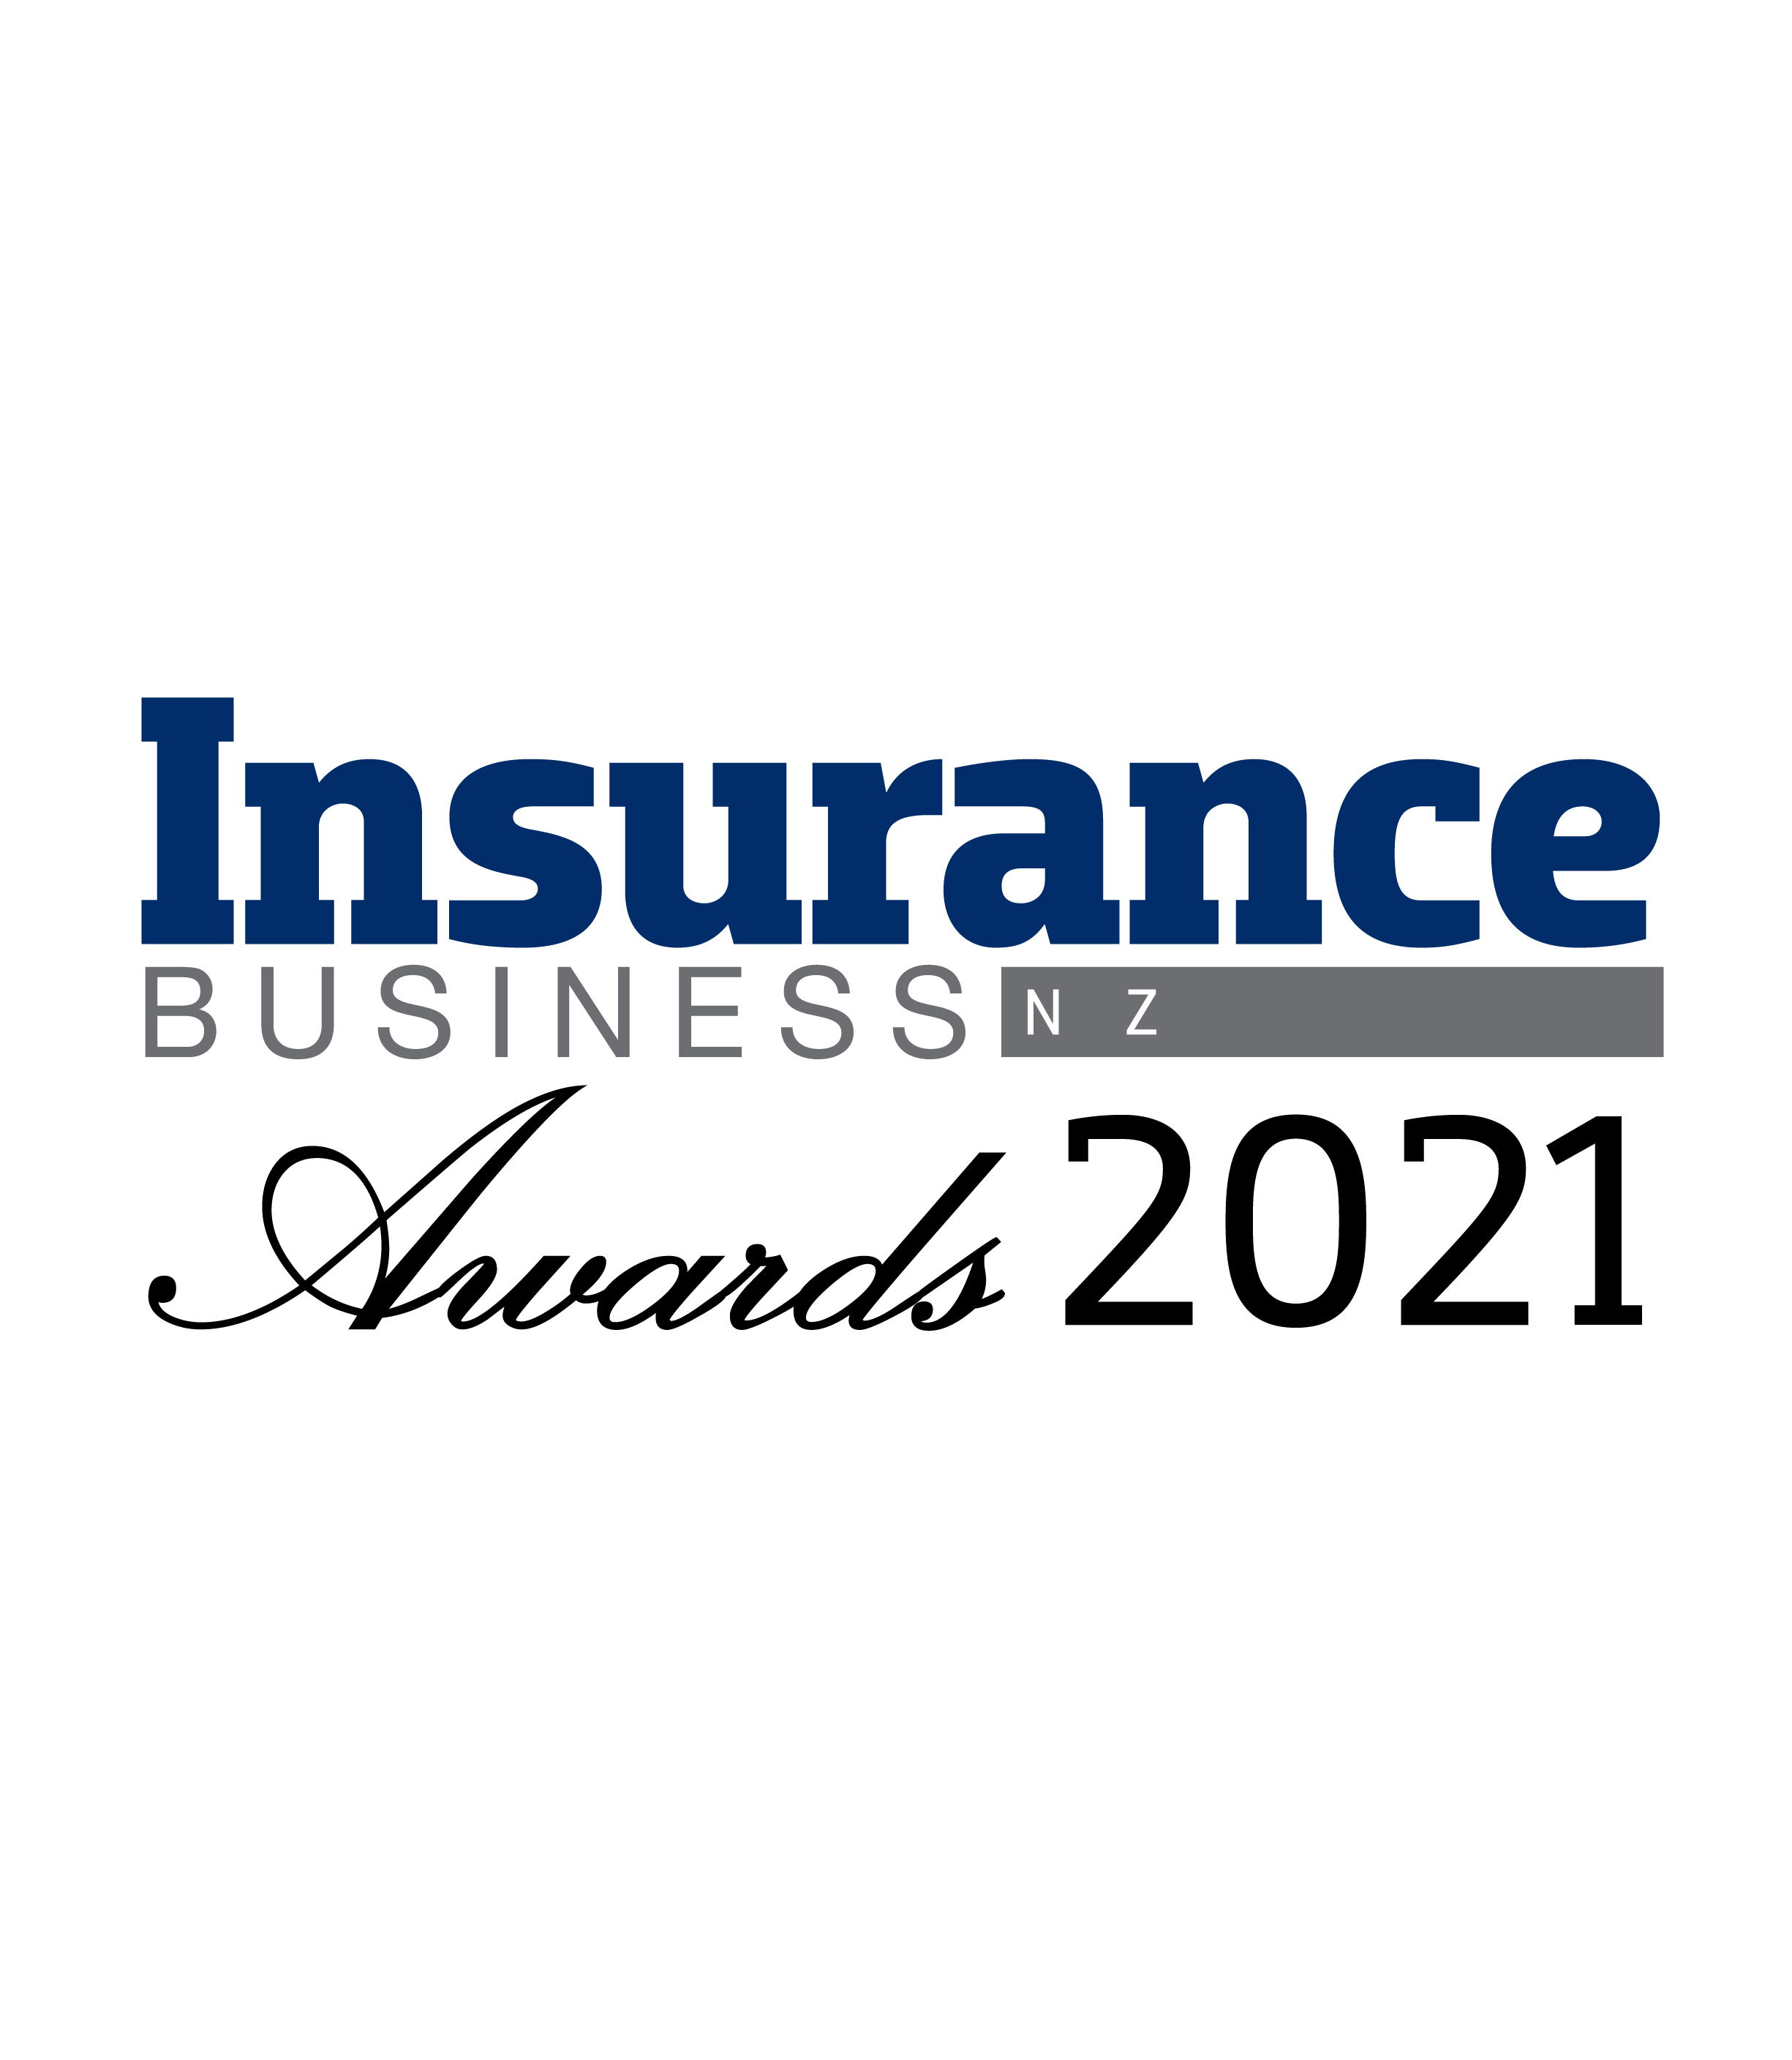 Insurance Business New Zealand Awards 2021